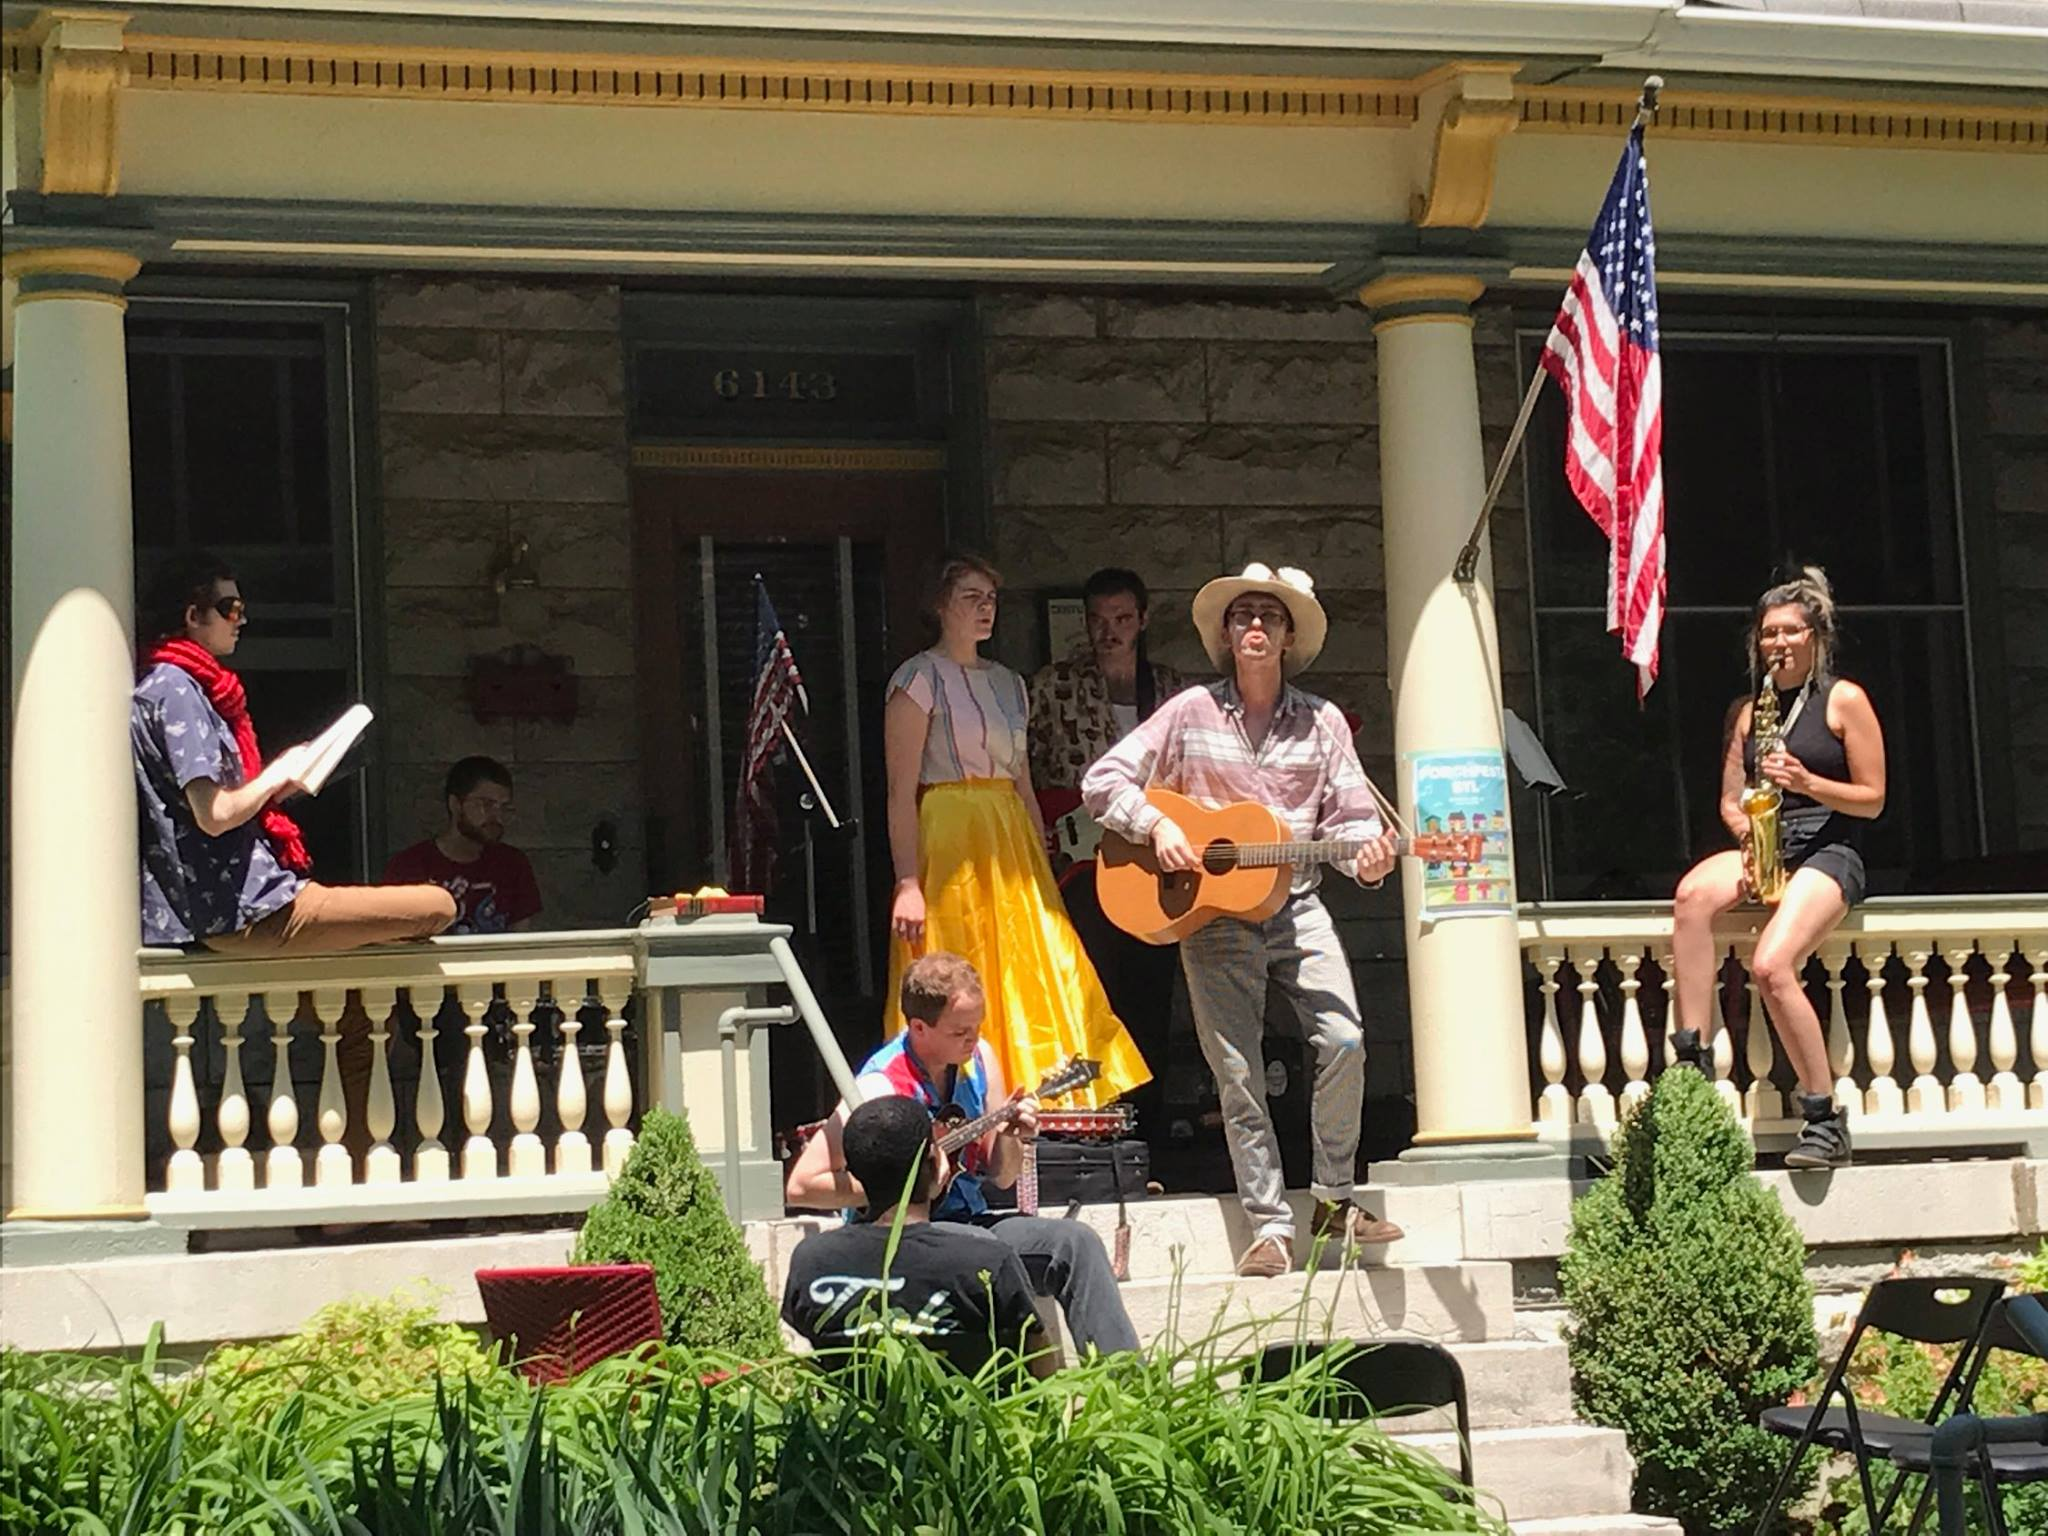 A Quirky Music Festival Demonstrates Its Community Development Value for Skinker DeBaliviere